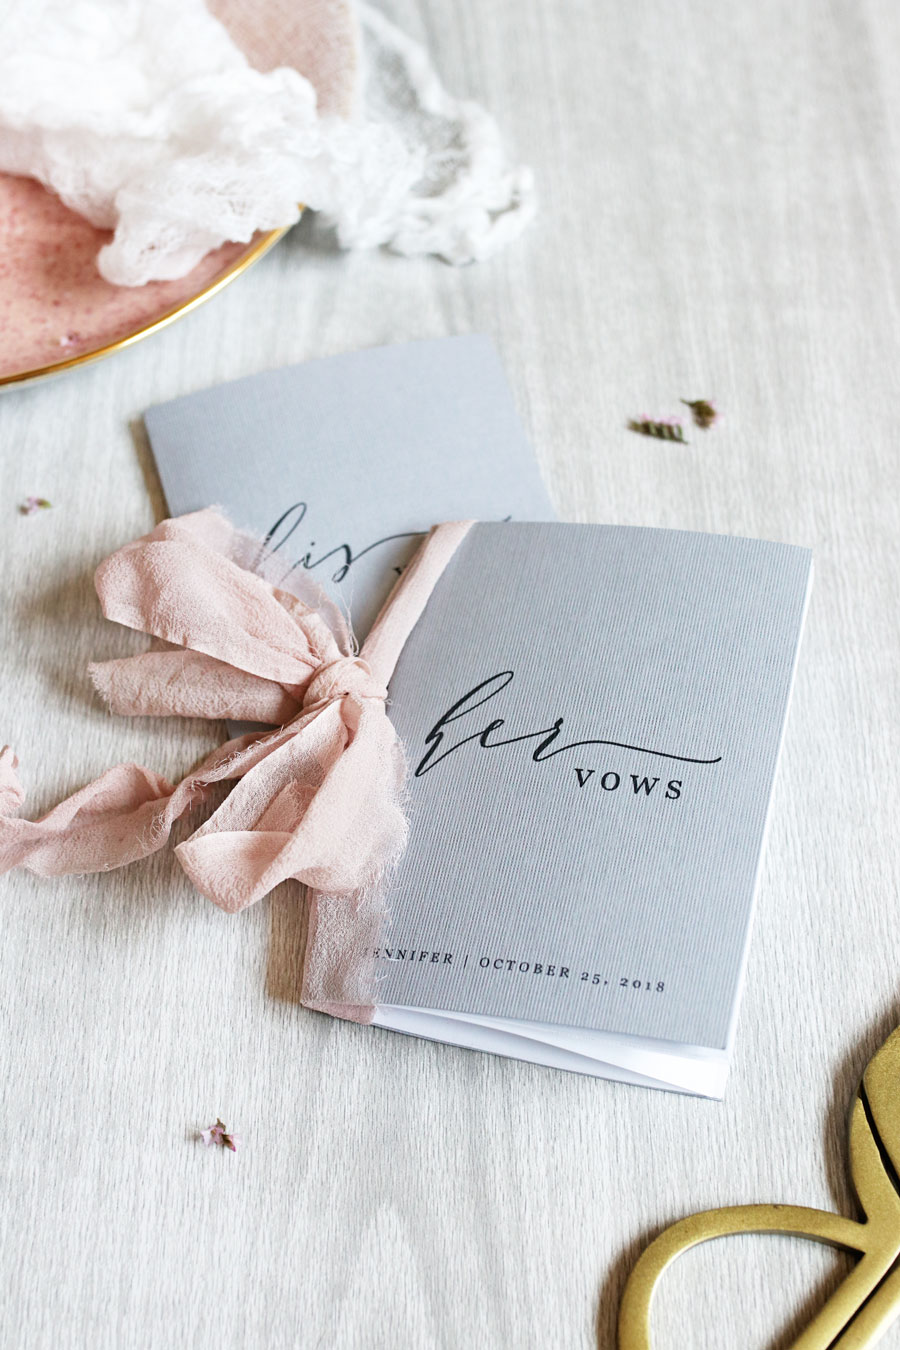 Looking for ways to make your wedding ceremony more special? Make these dreamy diy vow books to record your vows and cherish them for years to come.